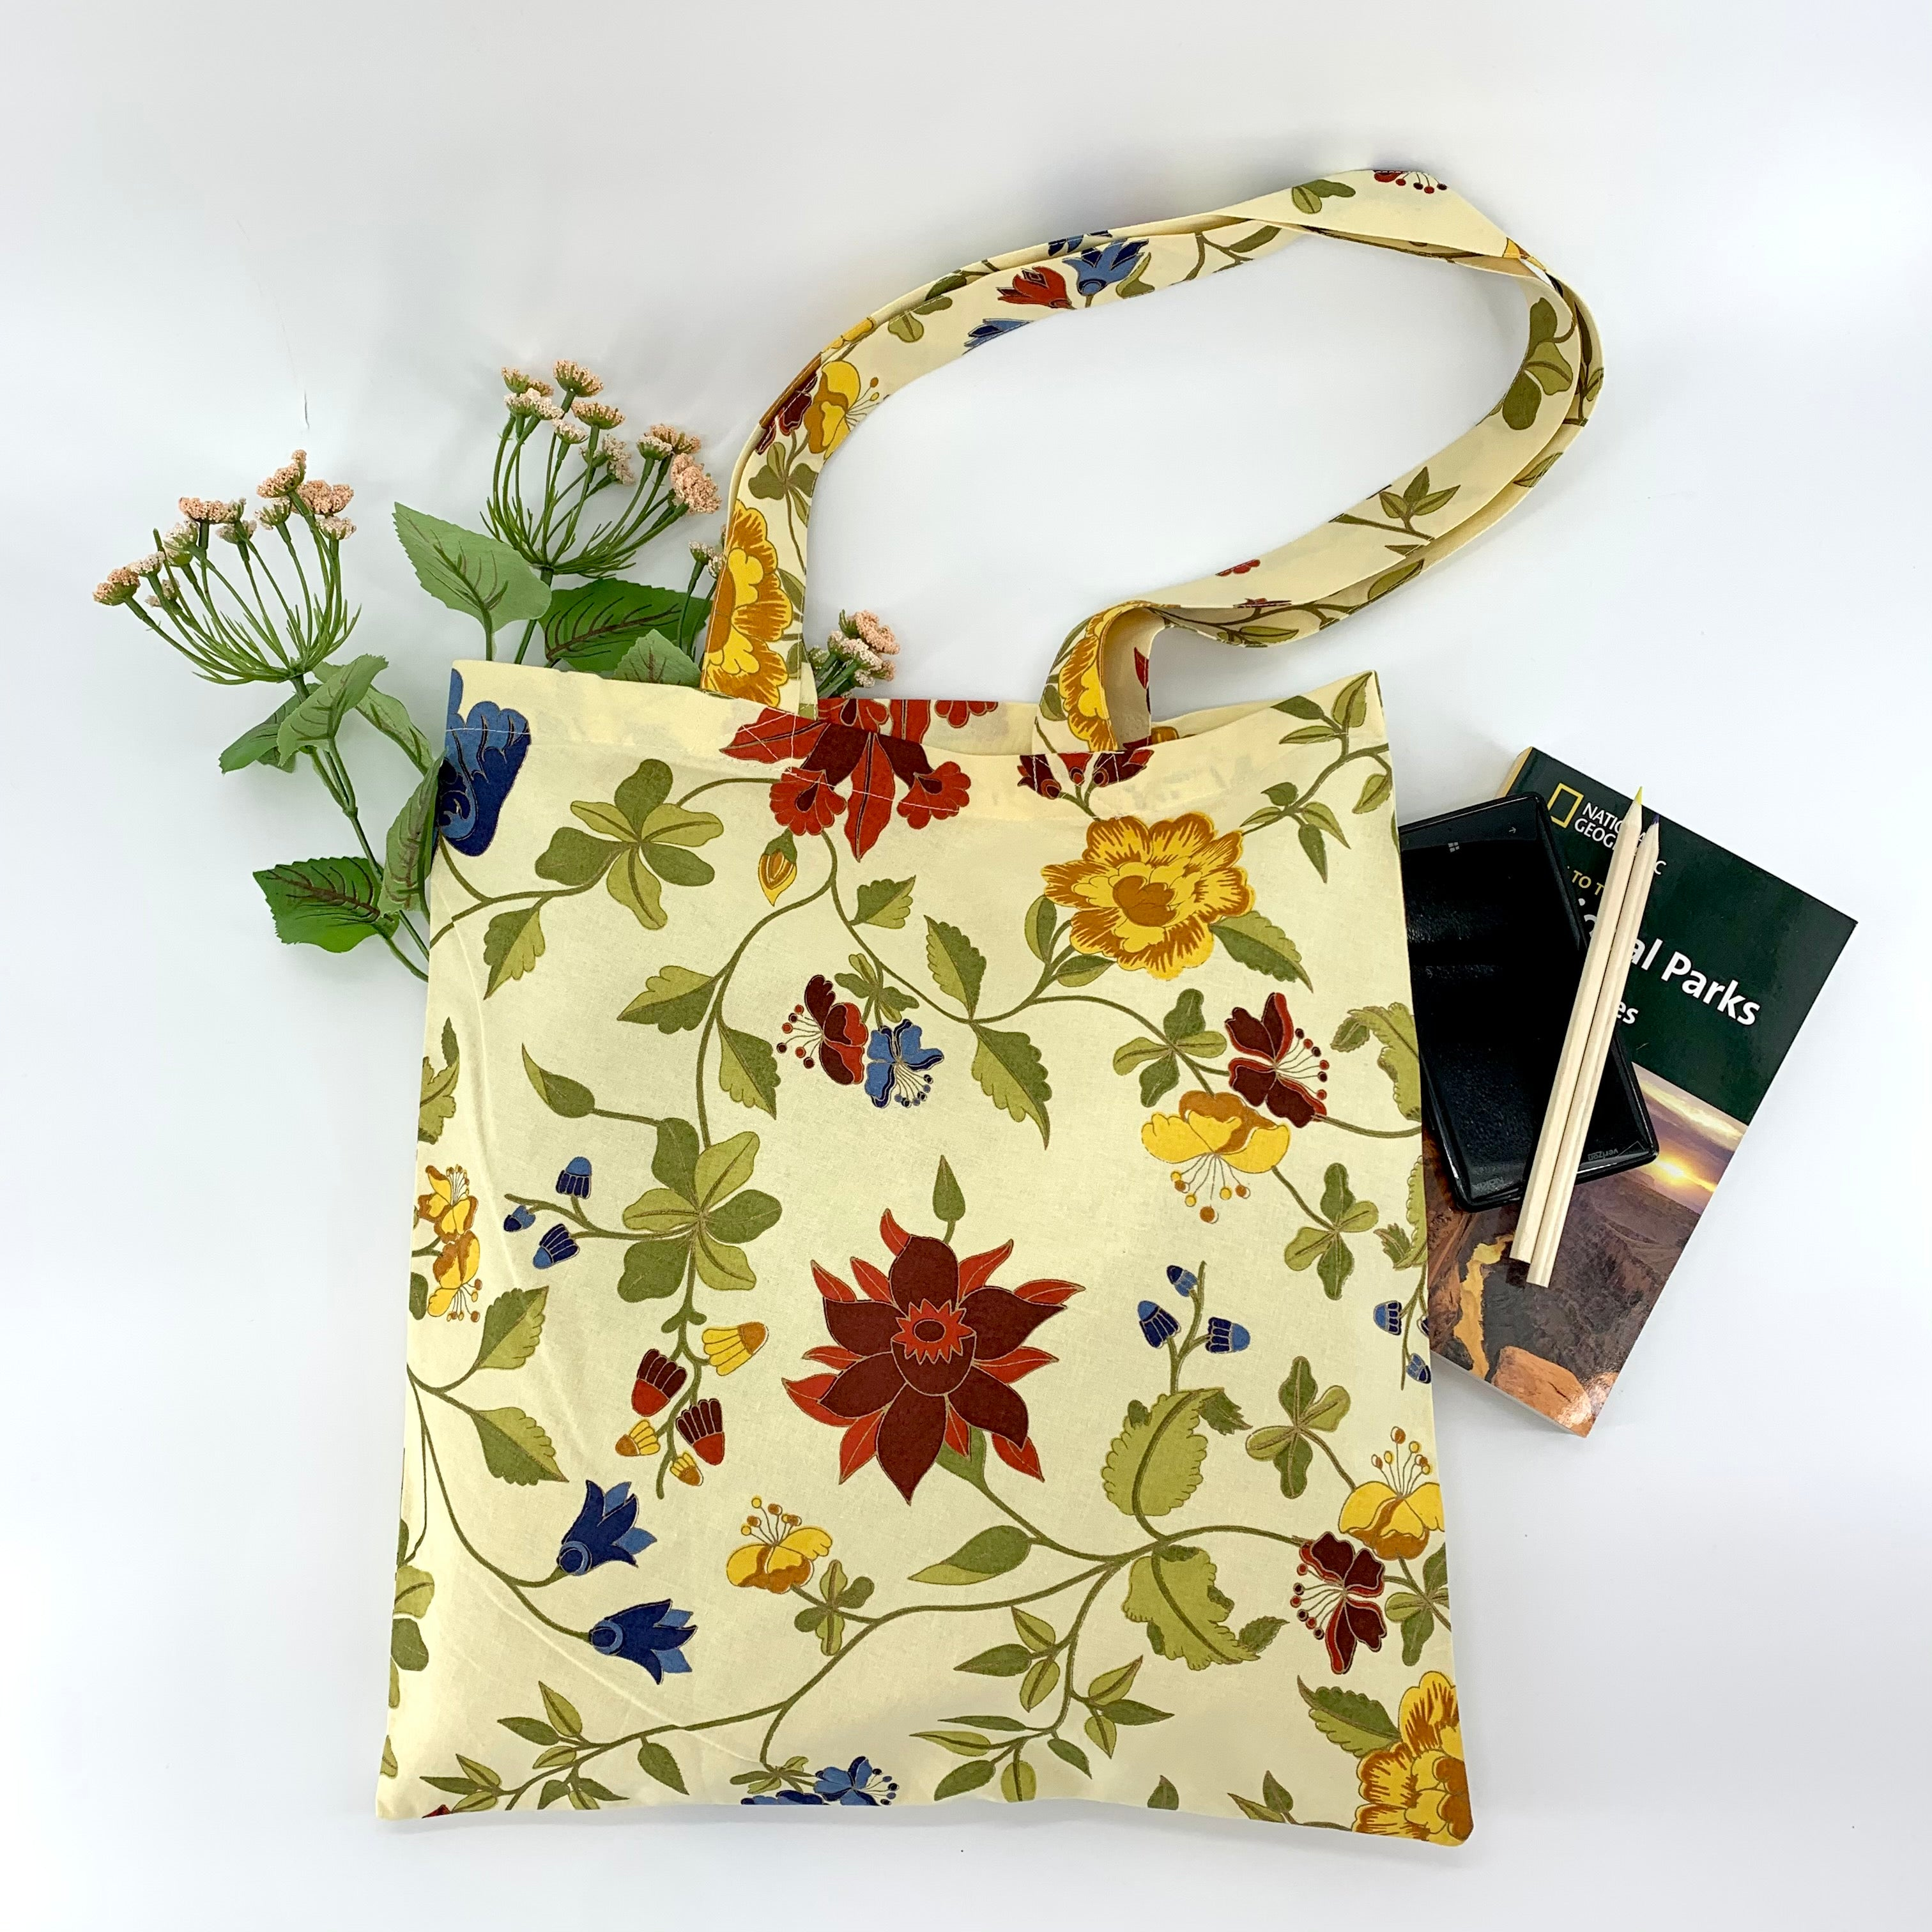 Multipurpose Tote Bag with Zipper Pouch; Yellow Printed Cotton